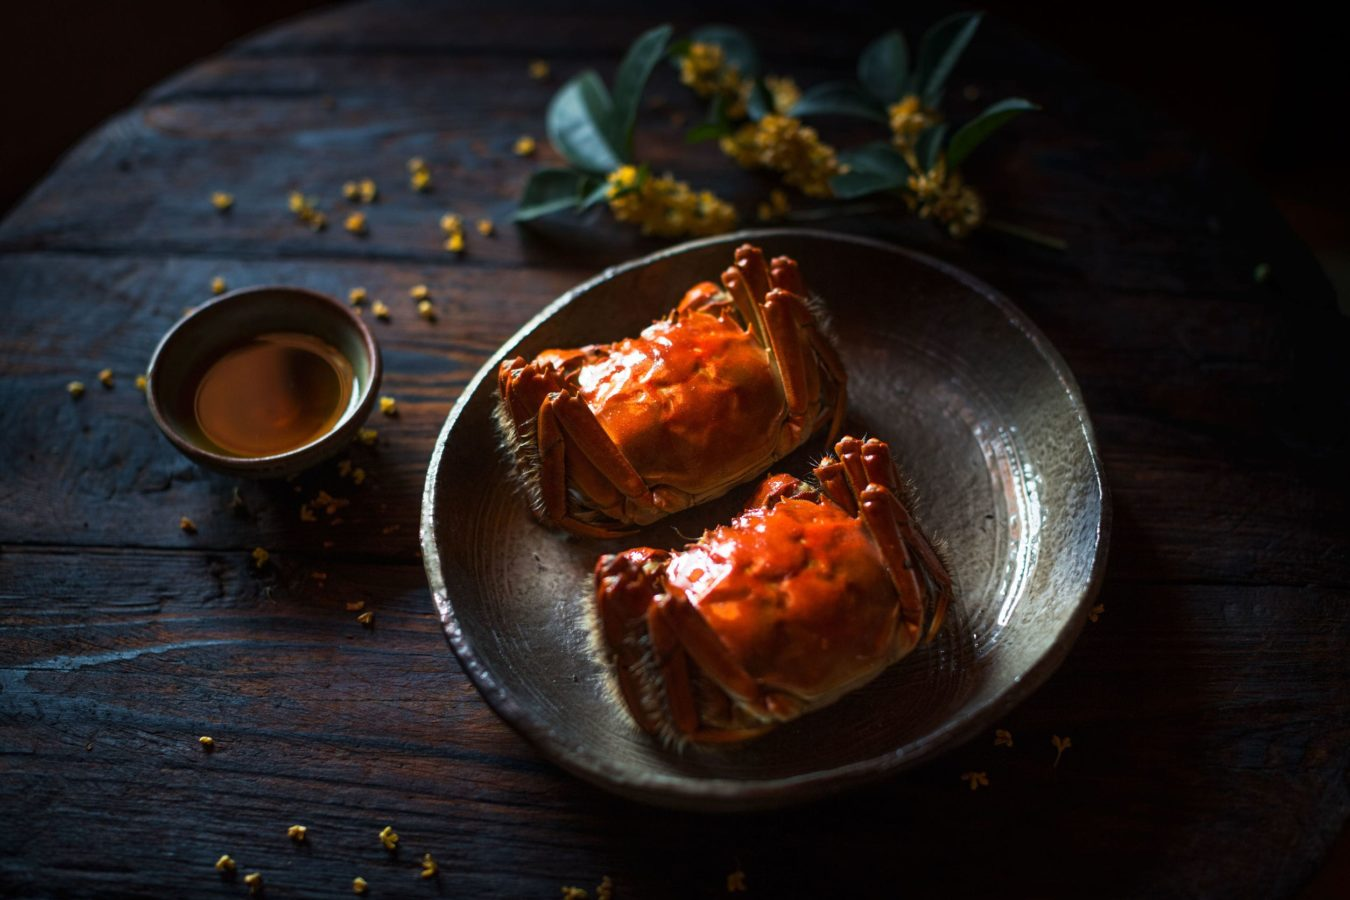 Where to go for the most decadent hairy crab menus in Singapore